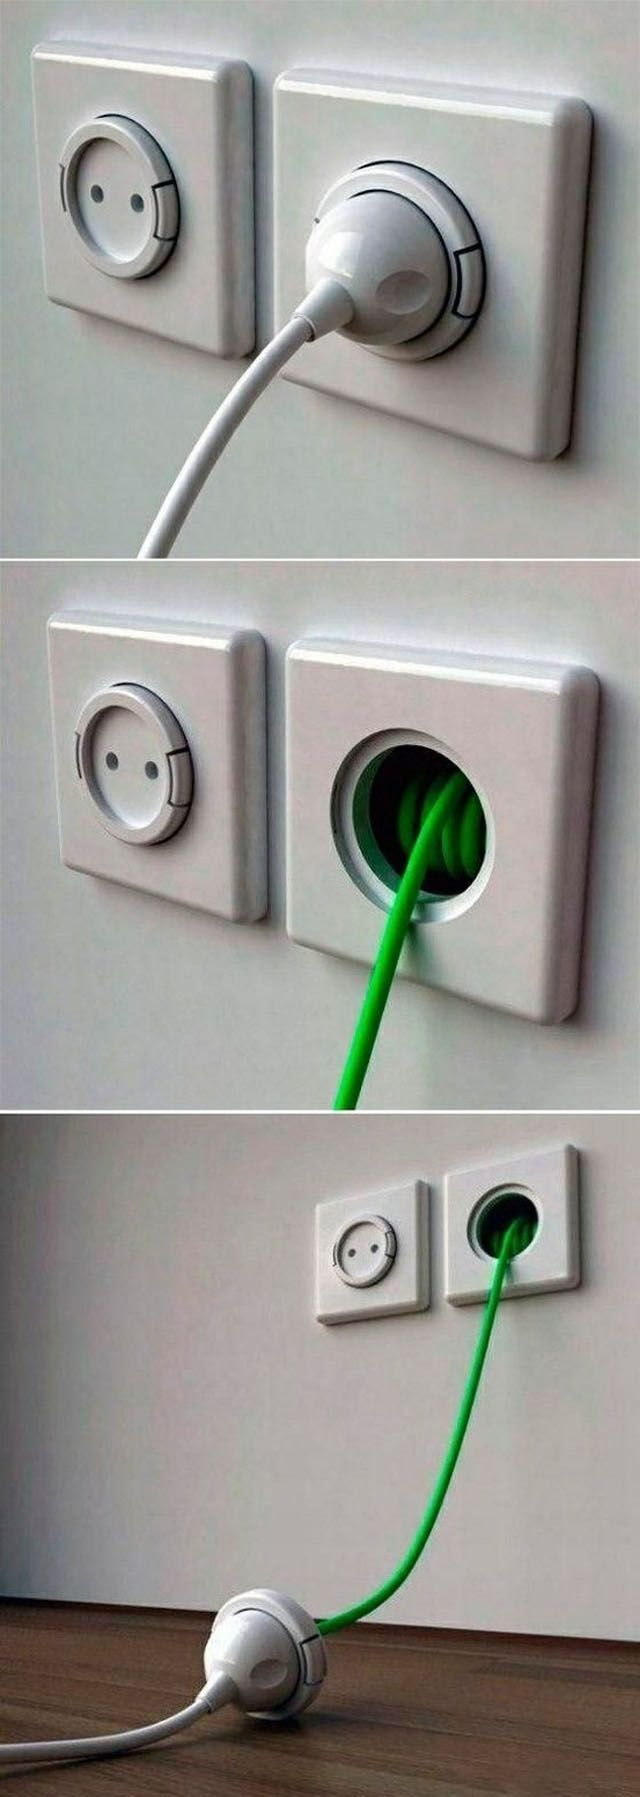 Extension cord in the wall